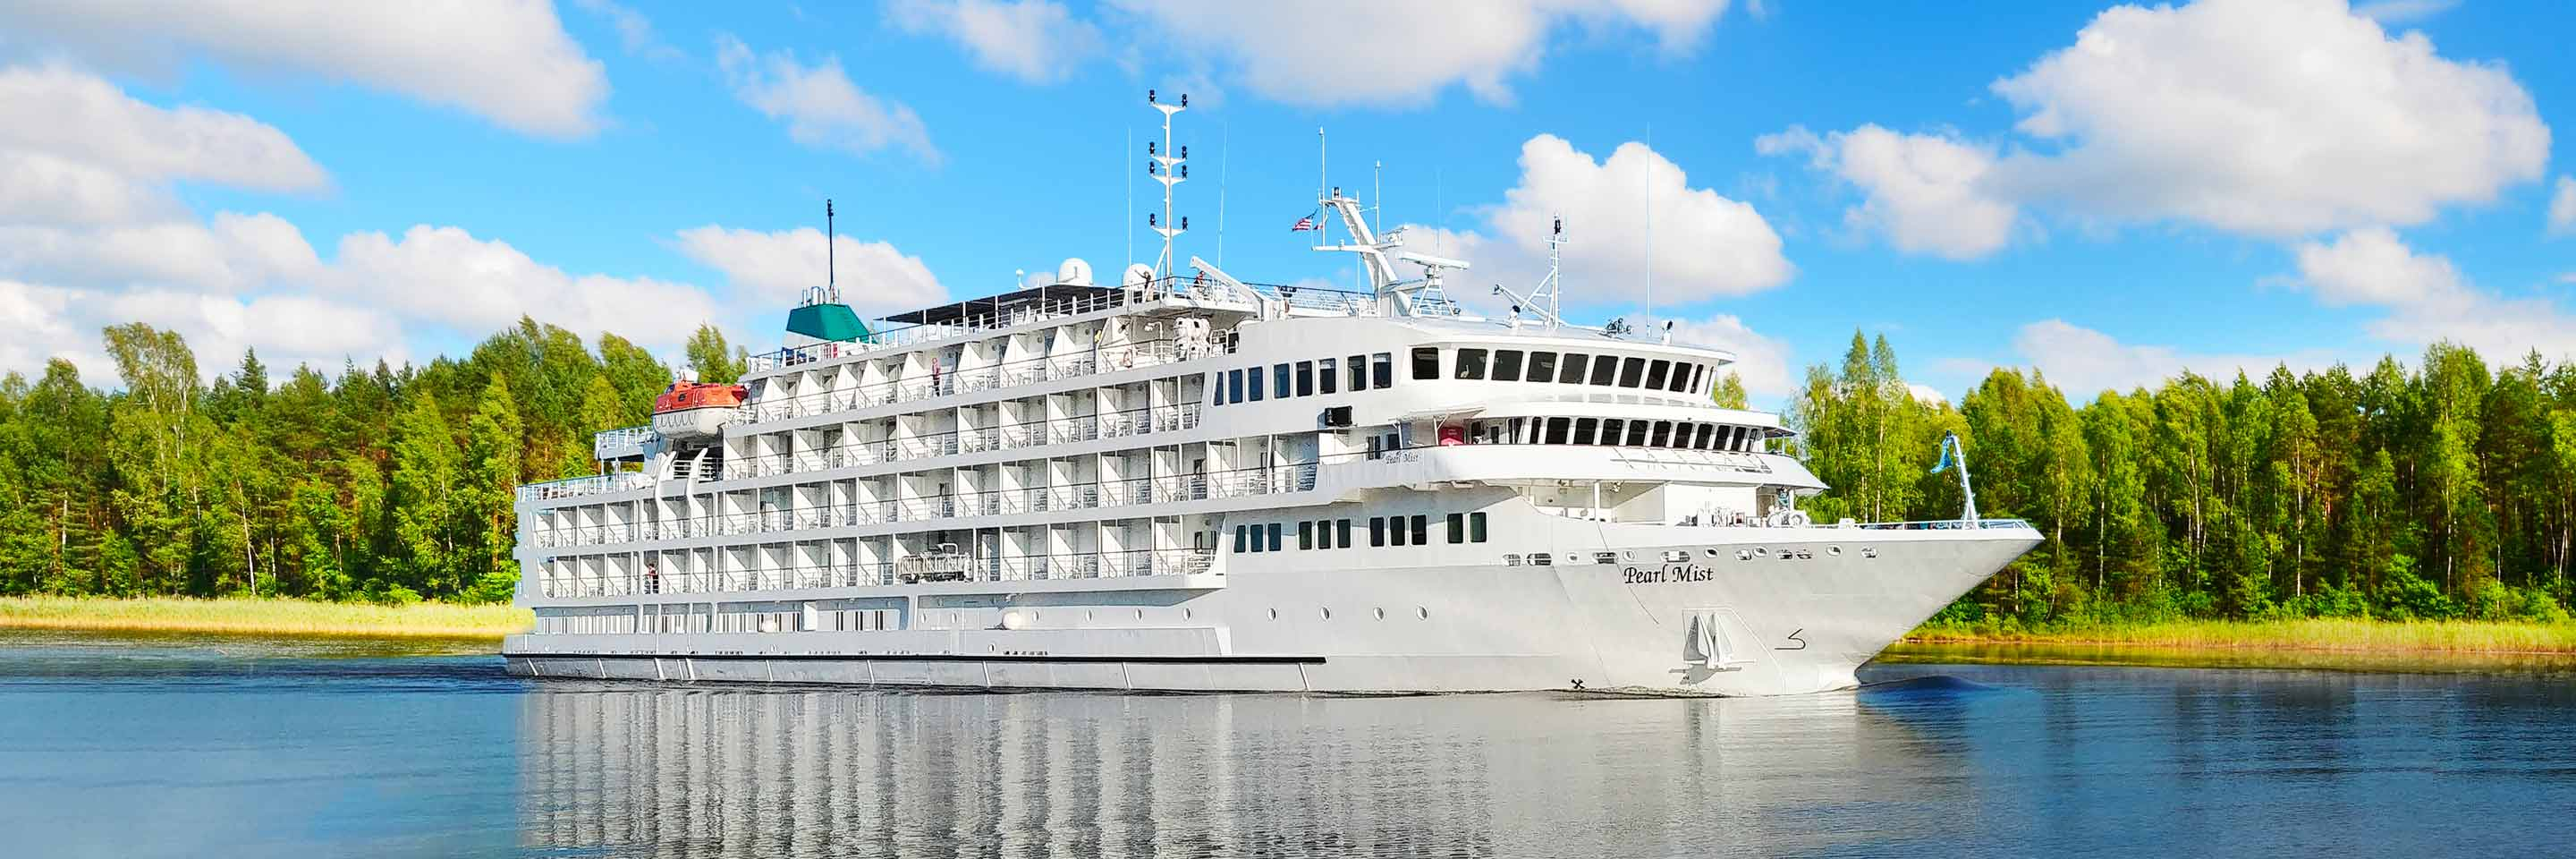 Pearl Mist Cruises To The Great Lakes Canada And Cuba